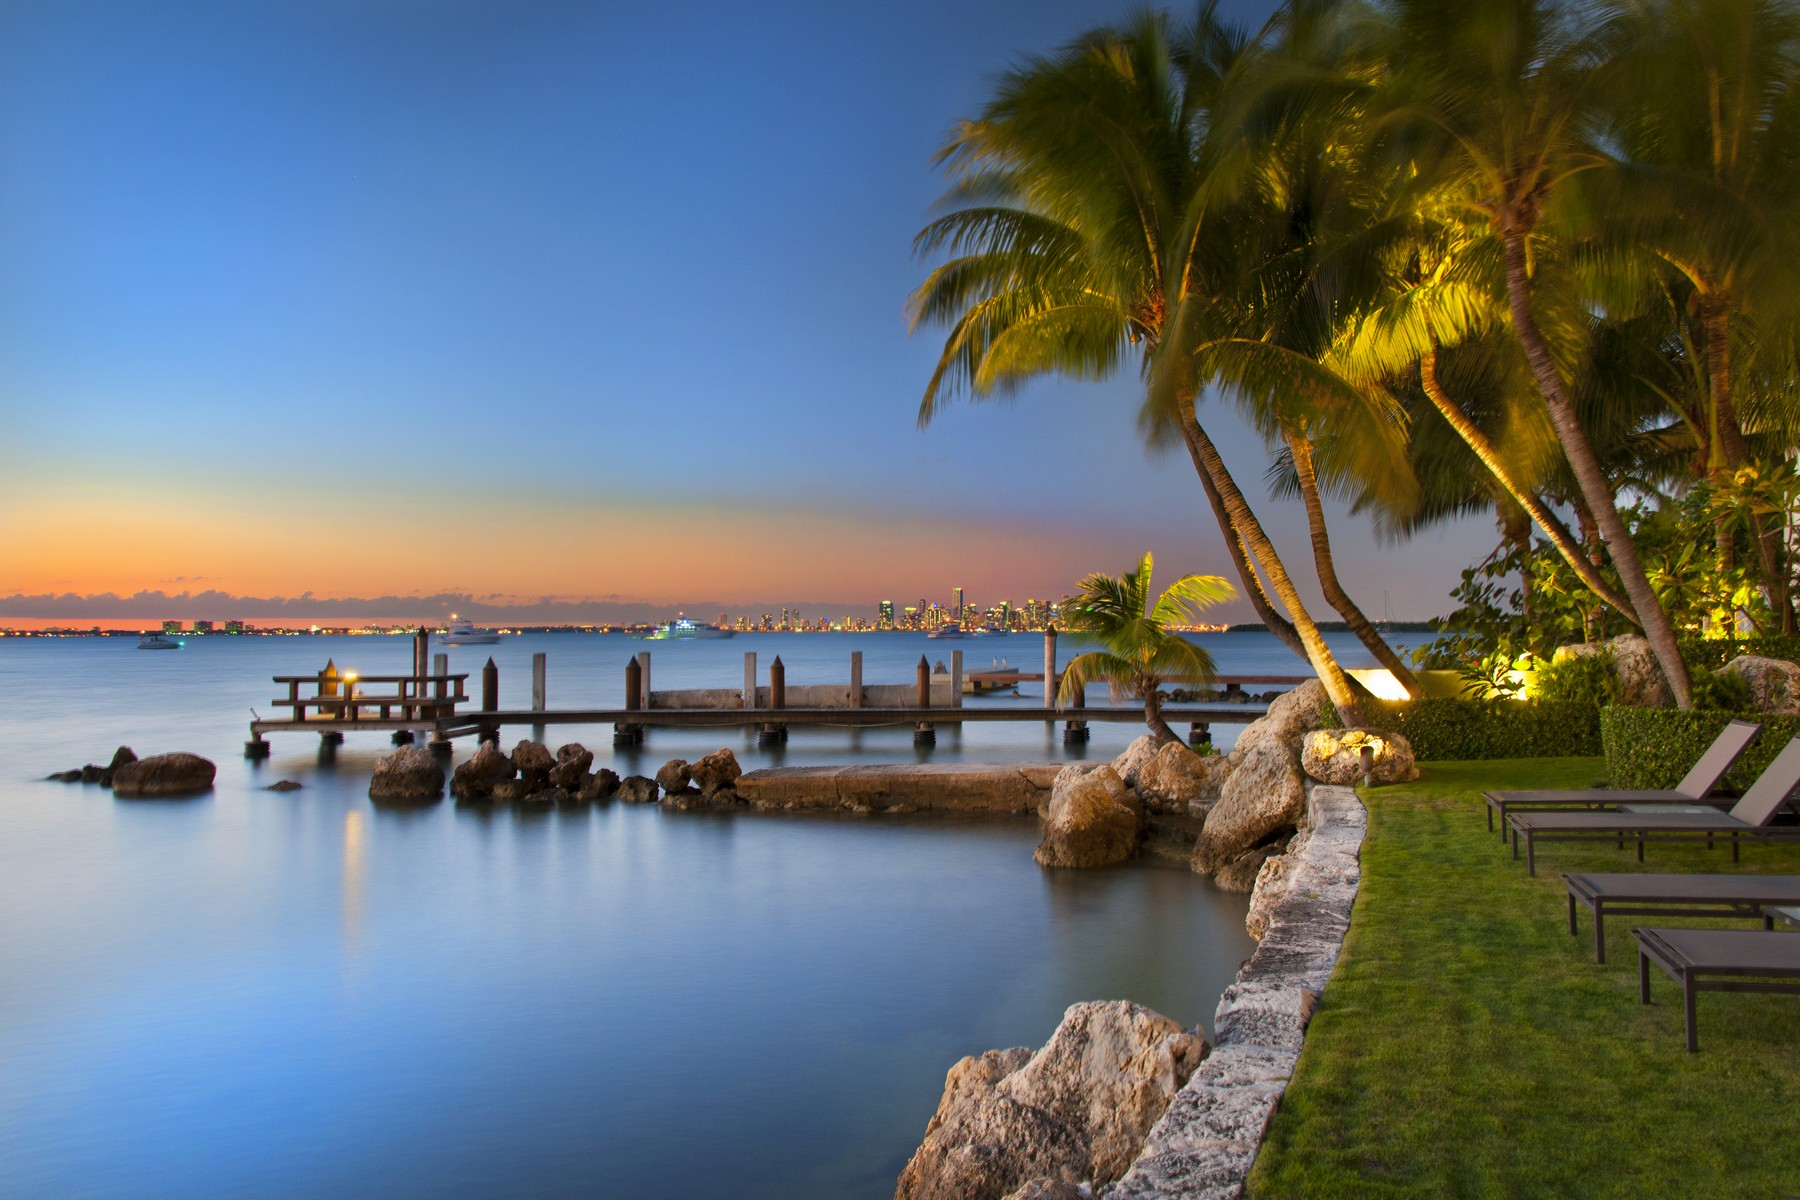 Single Family Home for Sale at 9 Harbor Point 9Harbor Point Key Biscayne, Florida, 33149 United States